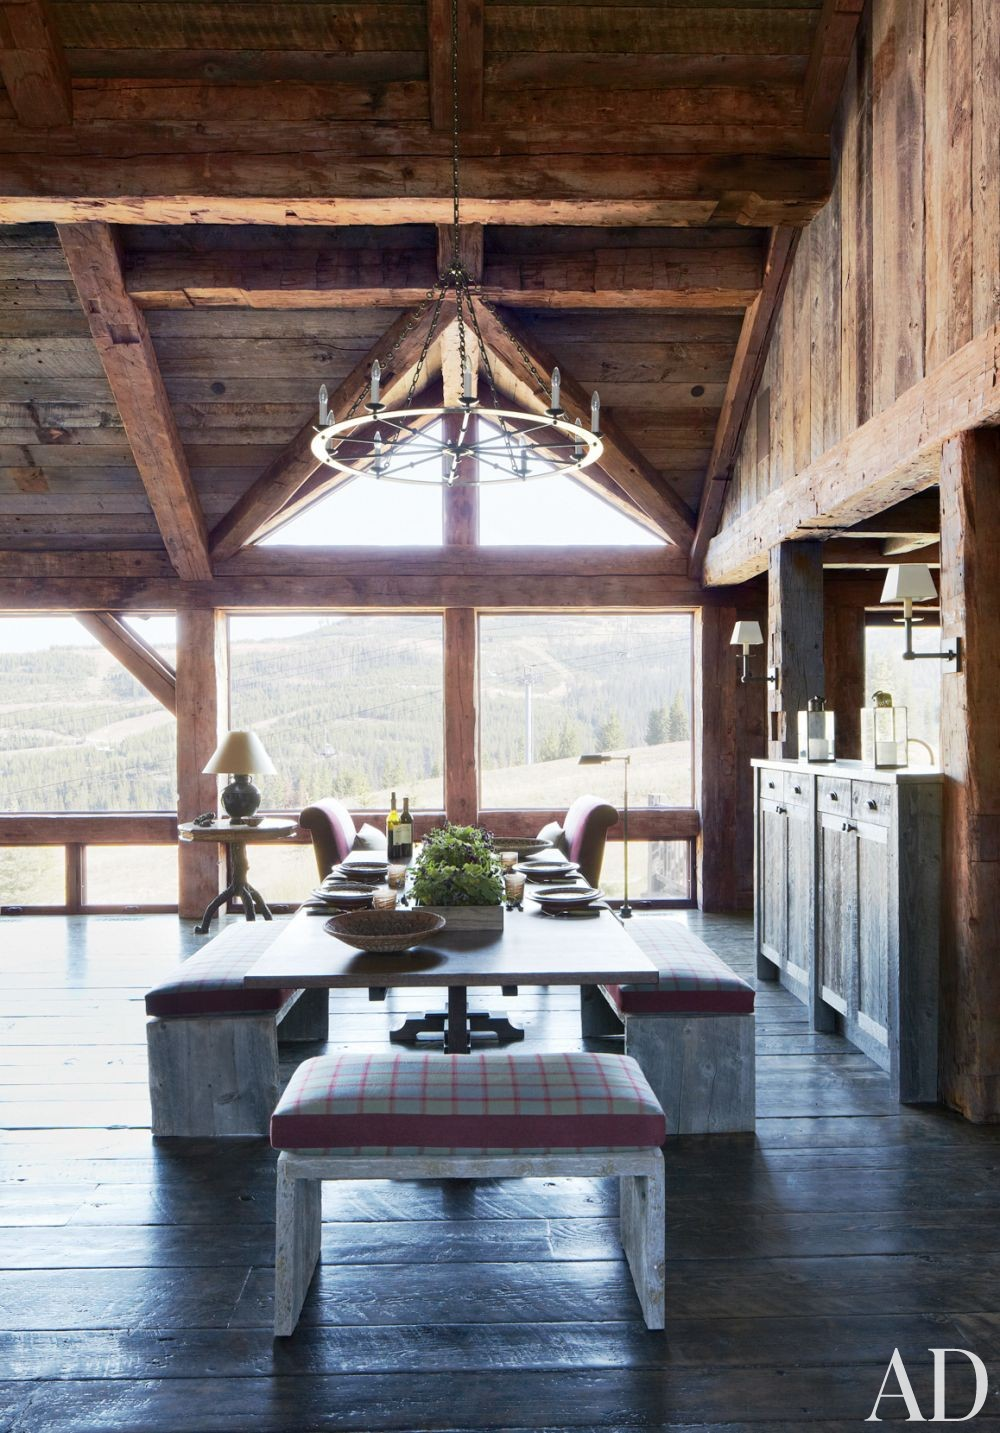 Rustic Dining Room by Markham Roberts Inc. and JLF & Associates Inc. in Big Sky, Montana